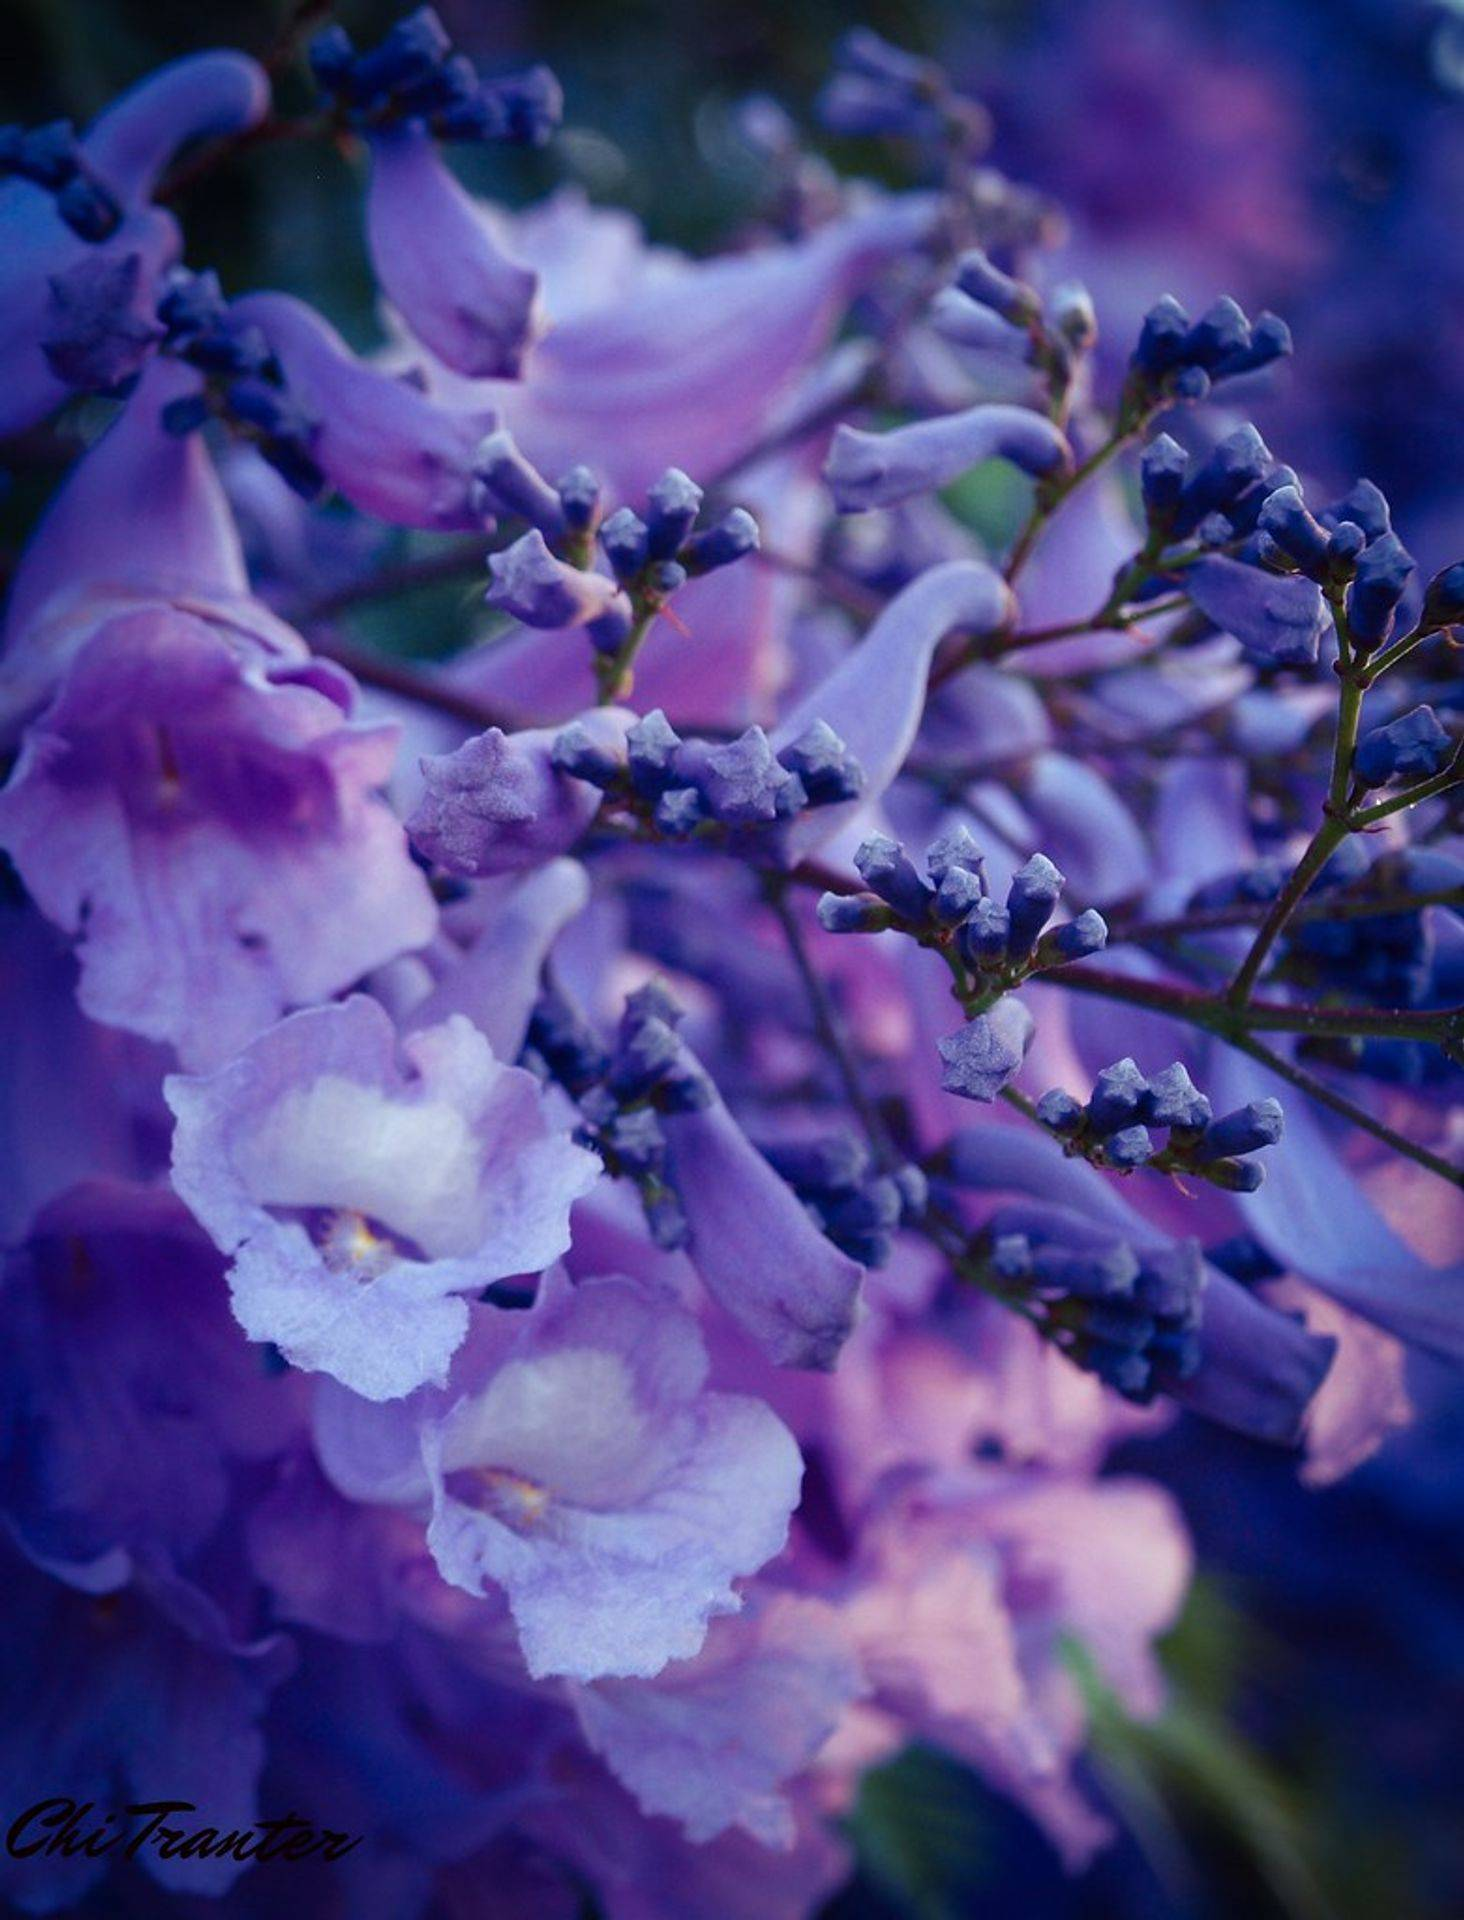 Jacaranda trees are gorgeous in bloom